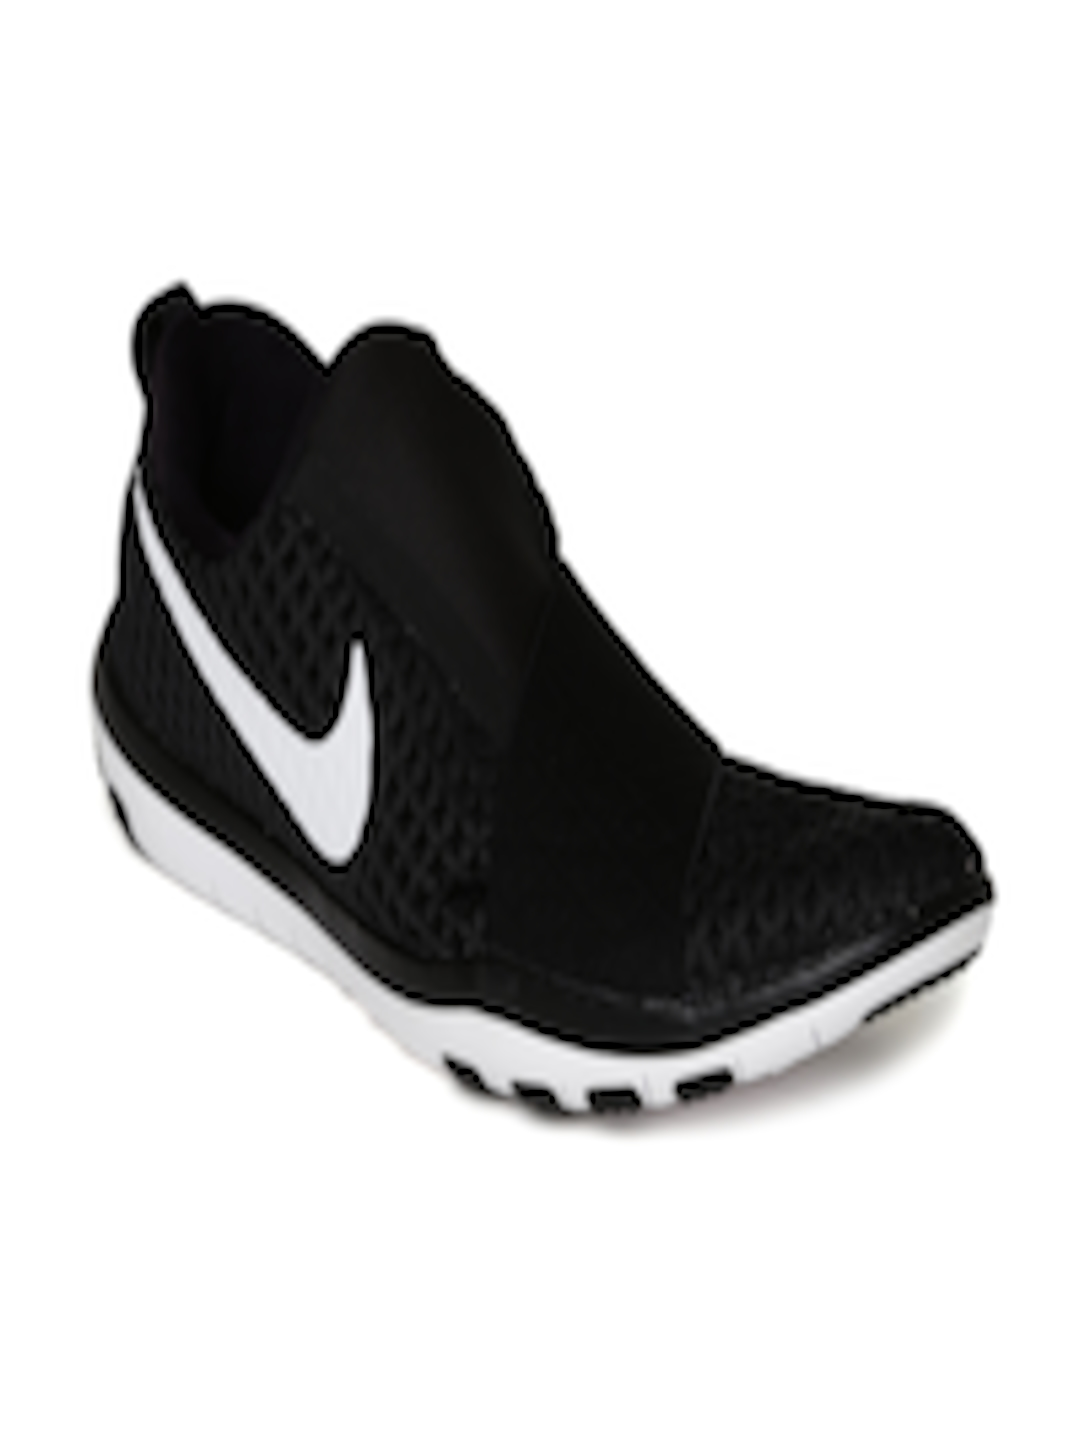 01f0b9f6f2c9 Buy Nike Women Black Free Connect Training Shoes - Sports Shoes for Women  1421014